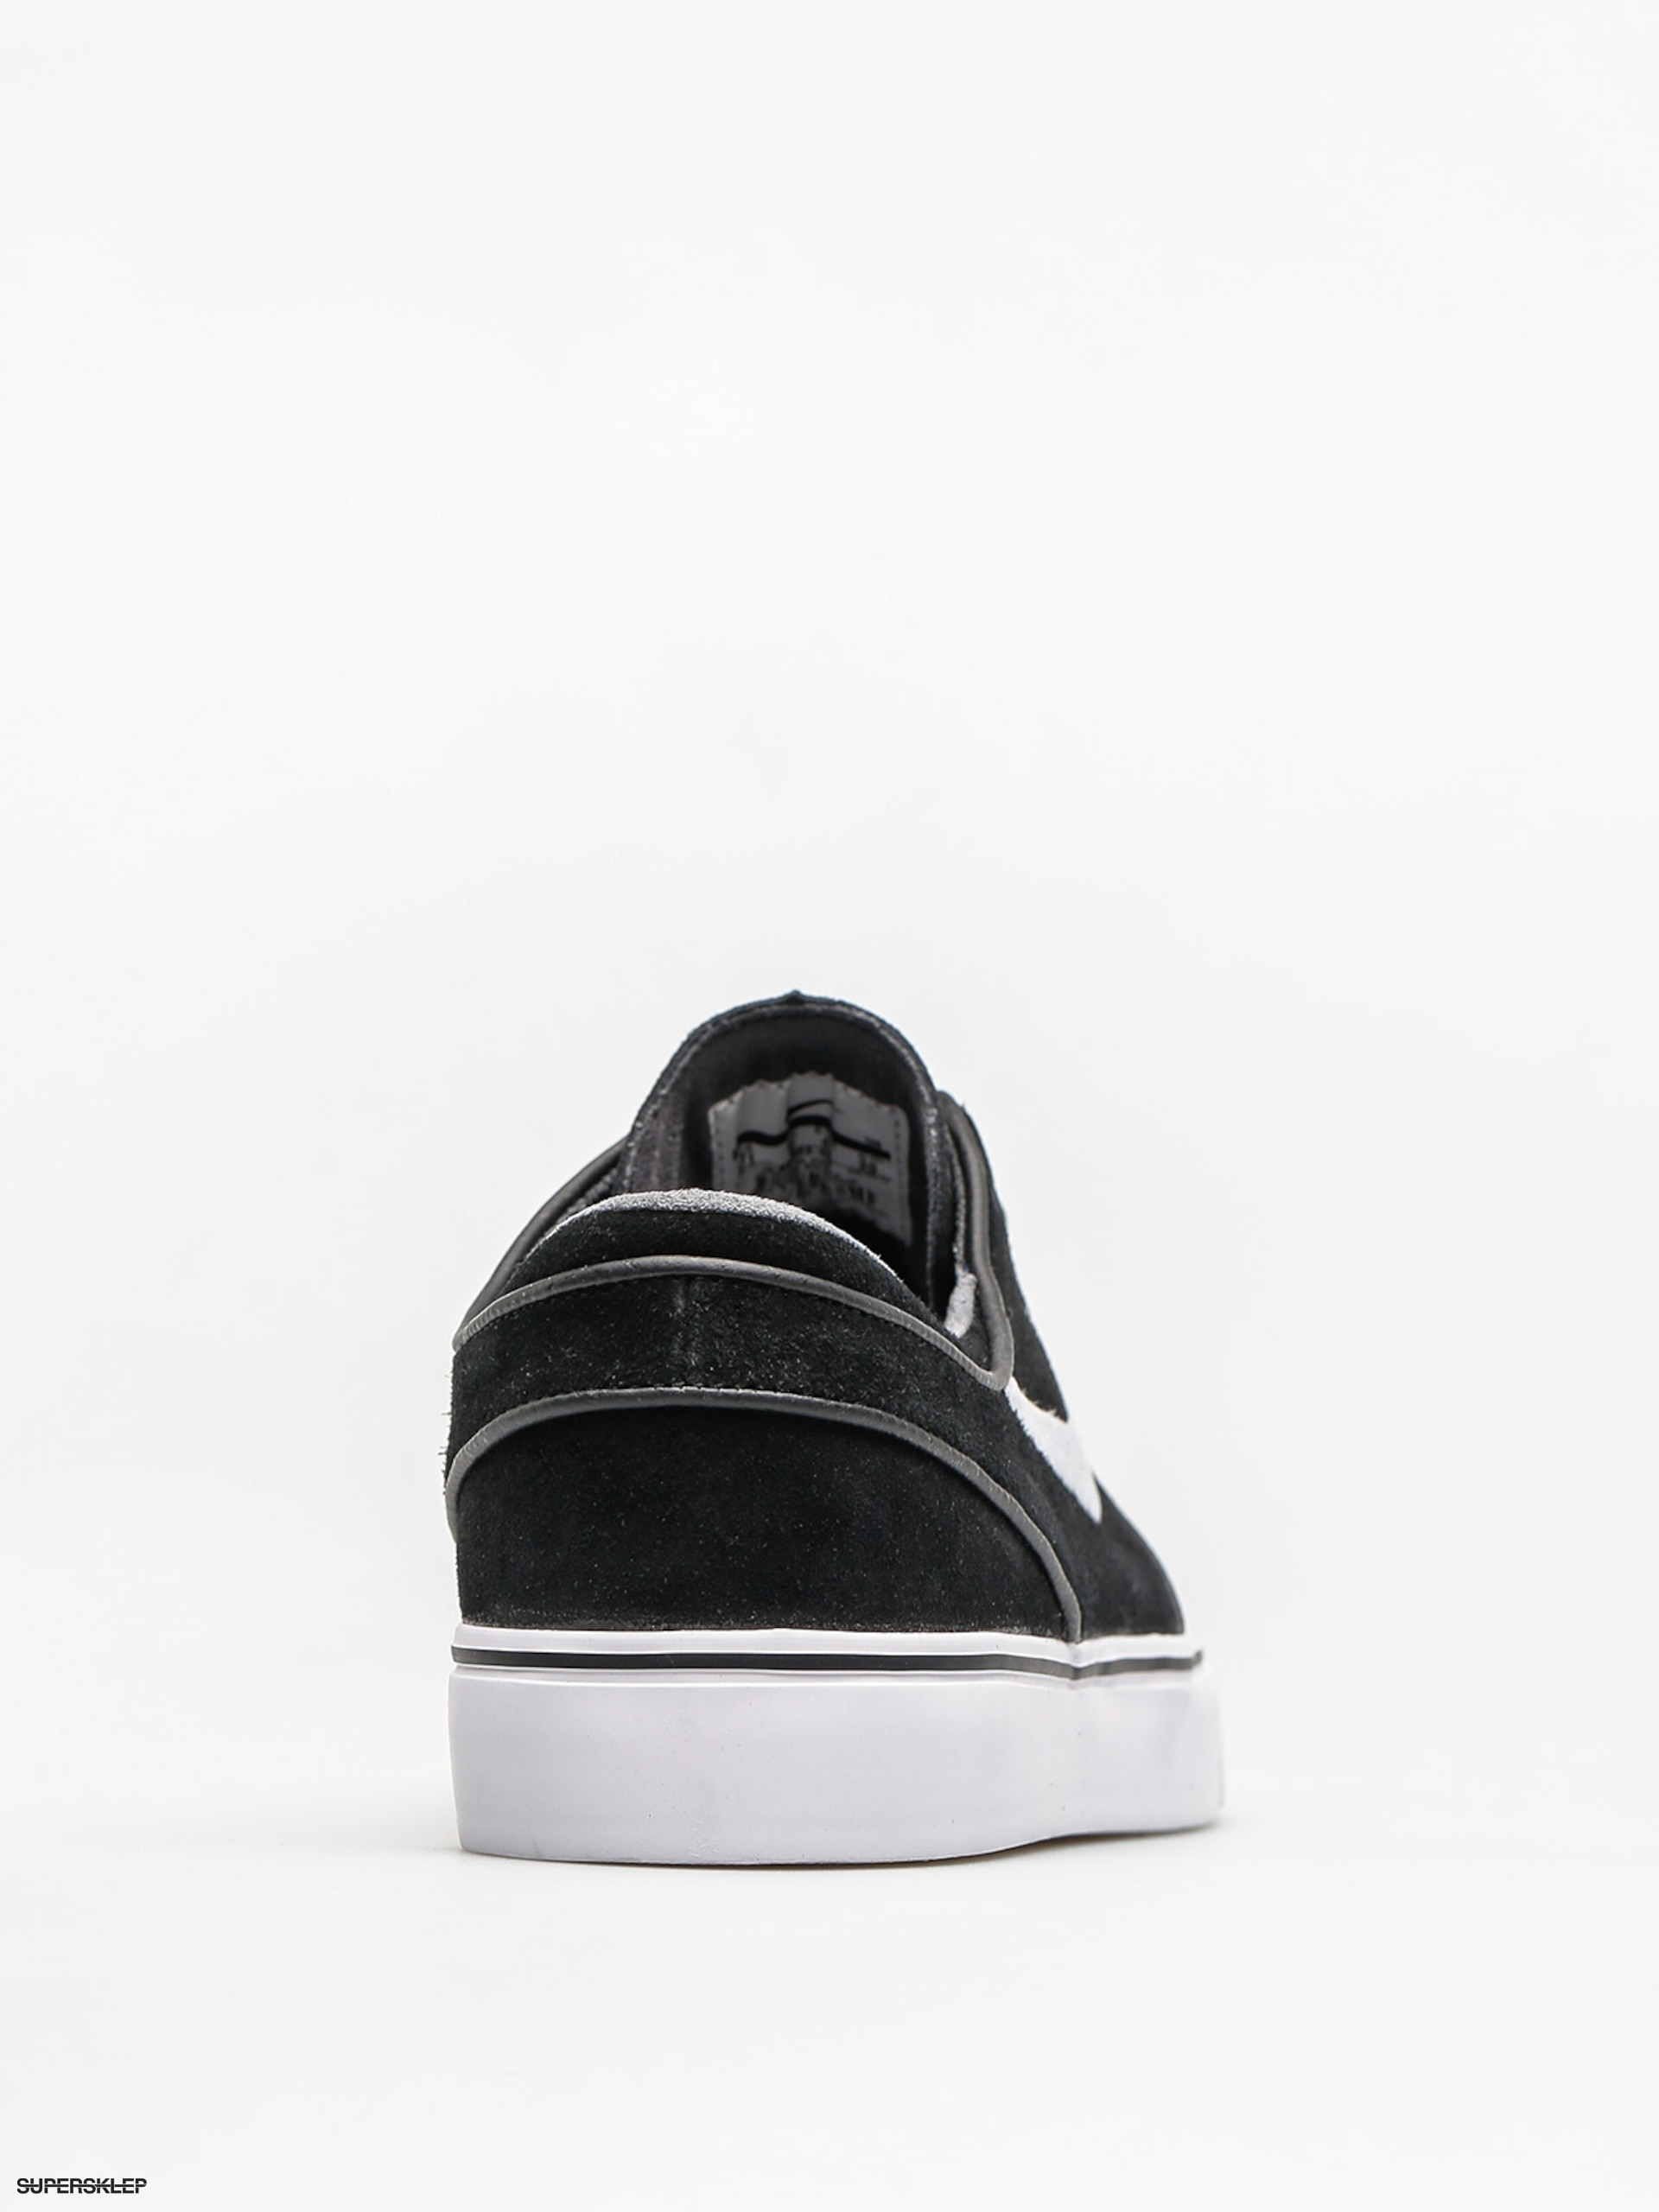 667d6bdc7f7e09 Buty Nike SB Zoom Stefan Janoski Og (black white gum light brown)